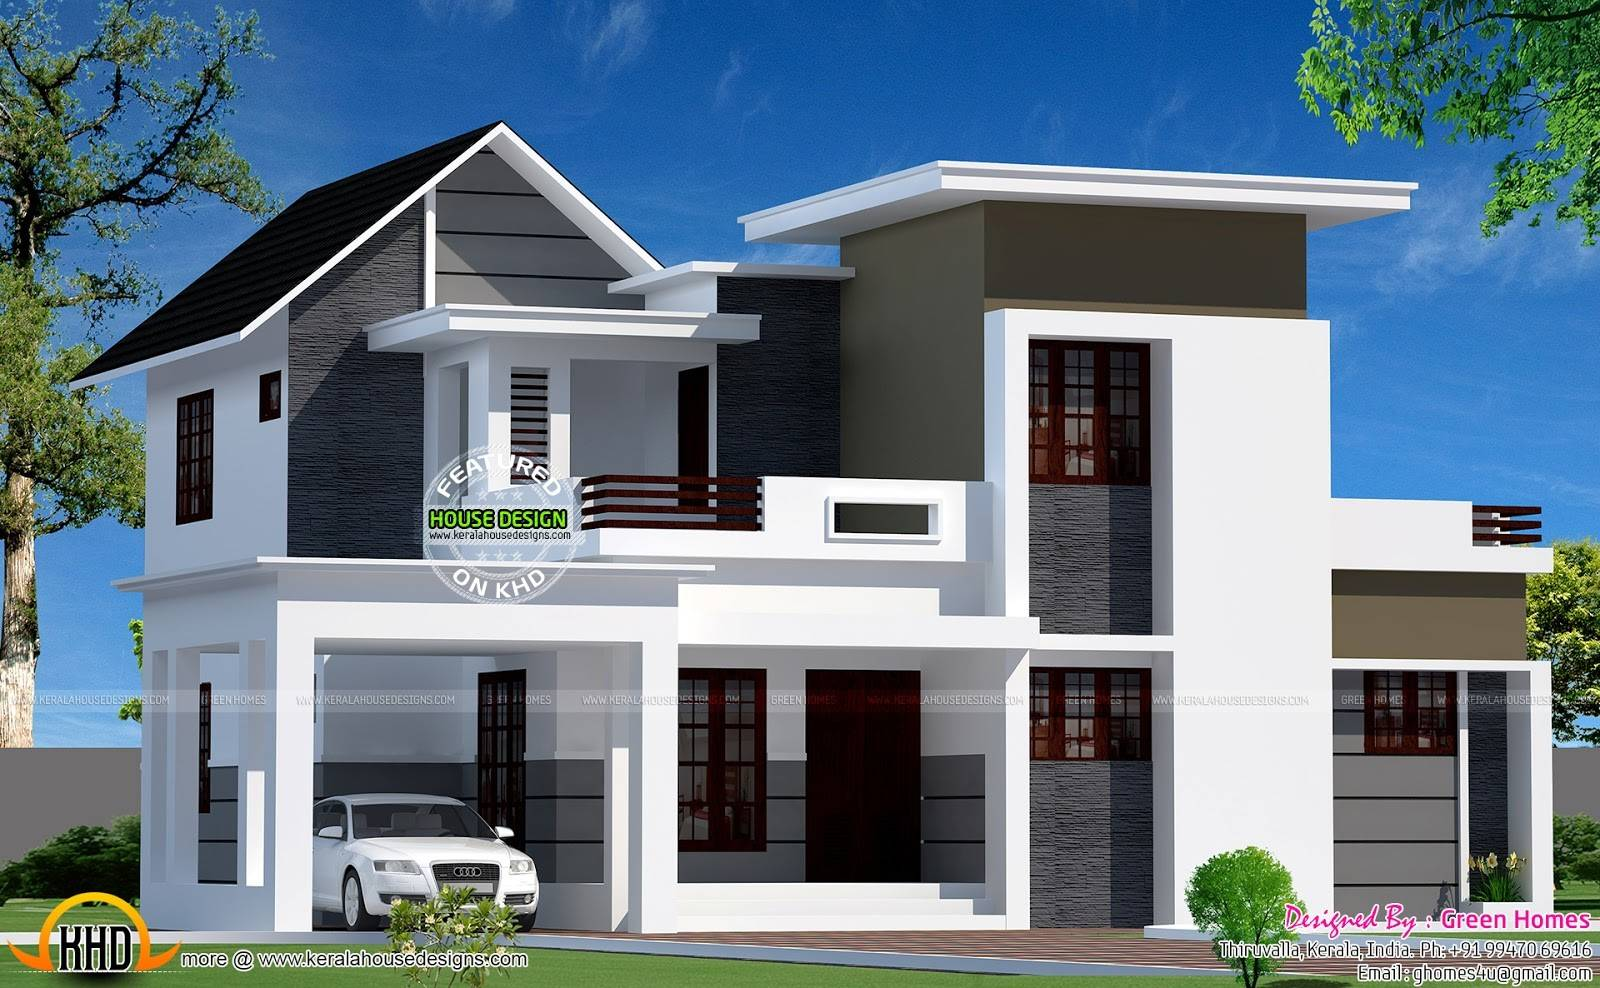 Neat Looking Mixed Roof Home Kerala Design Floor Plans